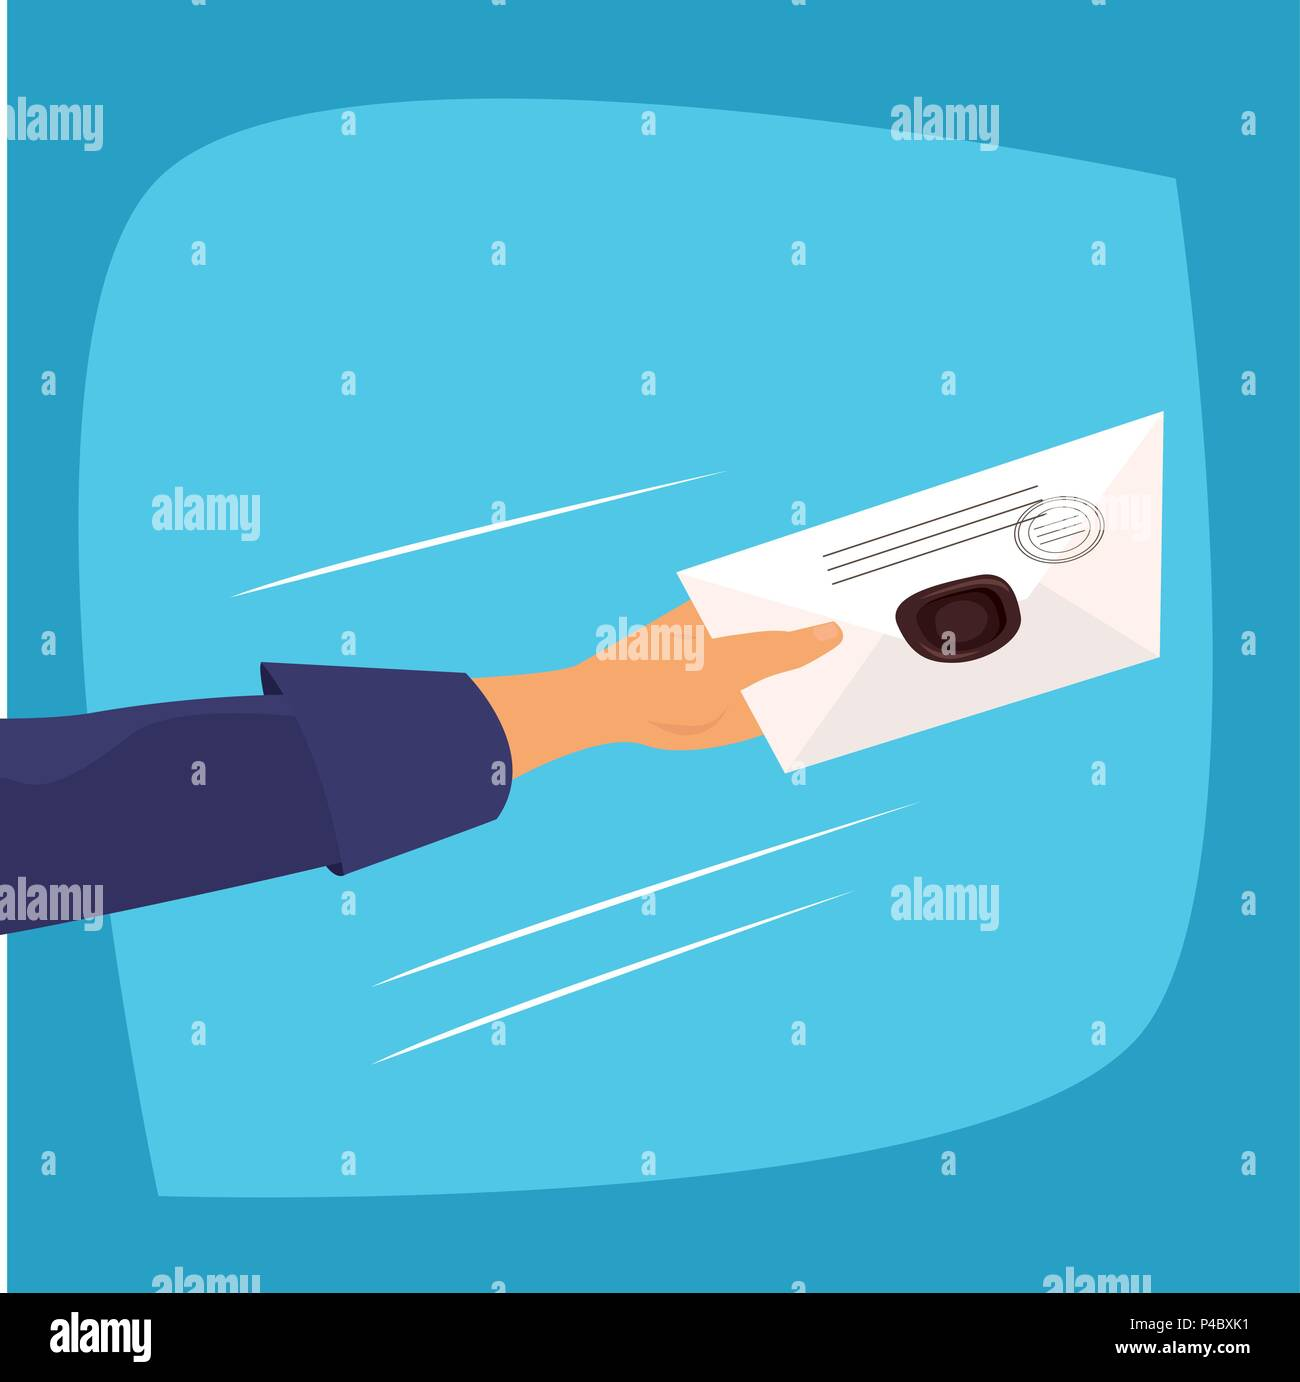 Square clip art in comic style, human hand of a man or postman quickly holds out paper letter or correspondence with a stamp. Mail or delivery concept - Stock Image